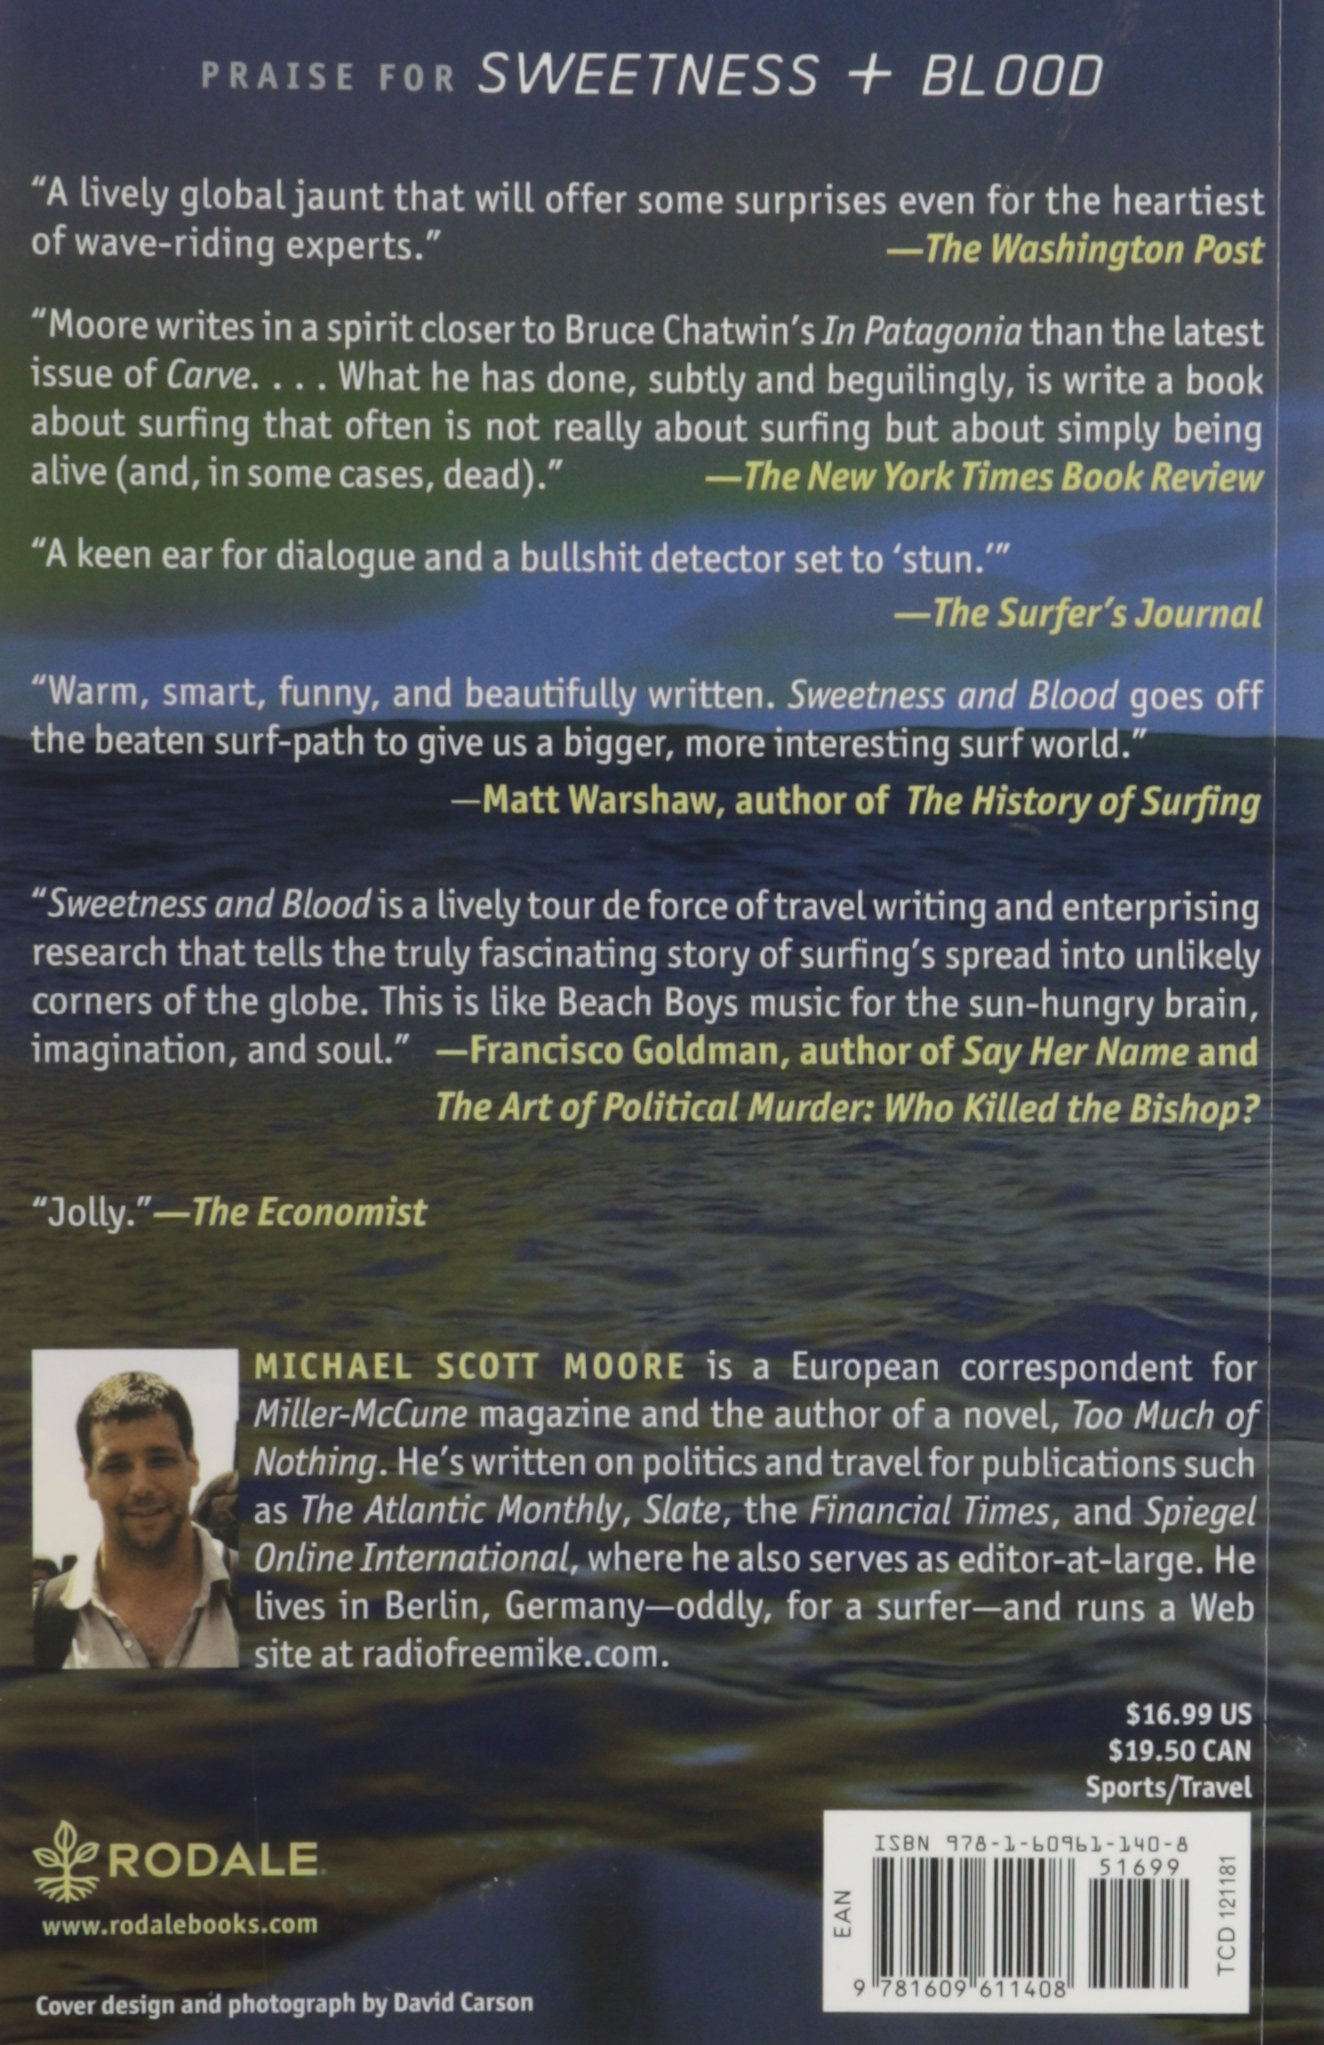 Sweetness And Blood: How Surfing Spread From Hawaii And California To The  Rest Of The World, With Some Unexpected Results: Michael Scott Moore:  Amazon: